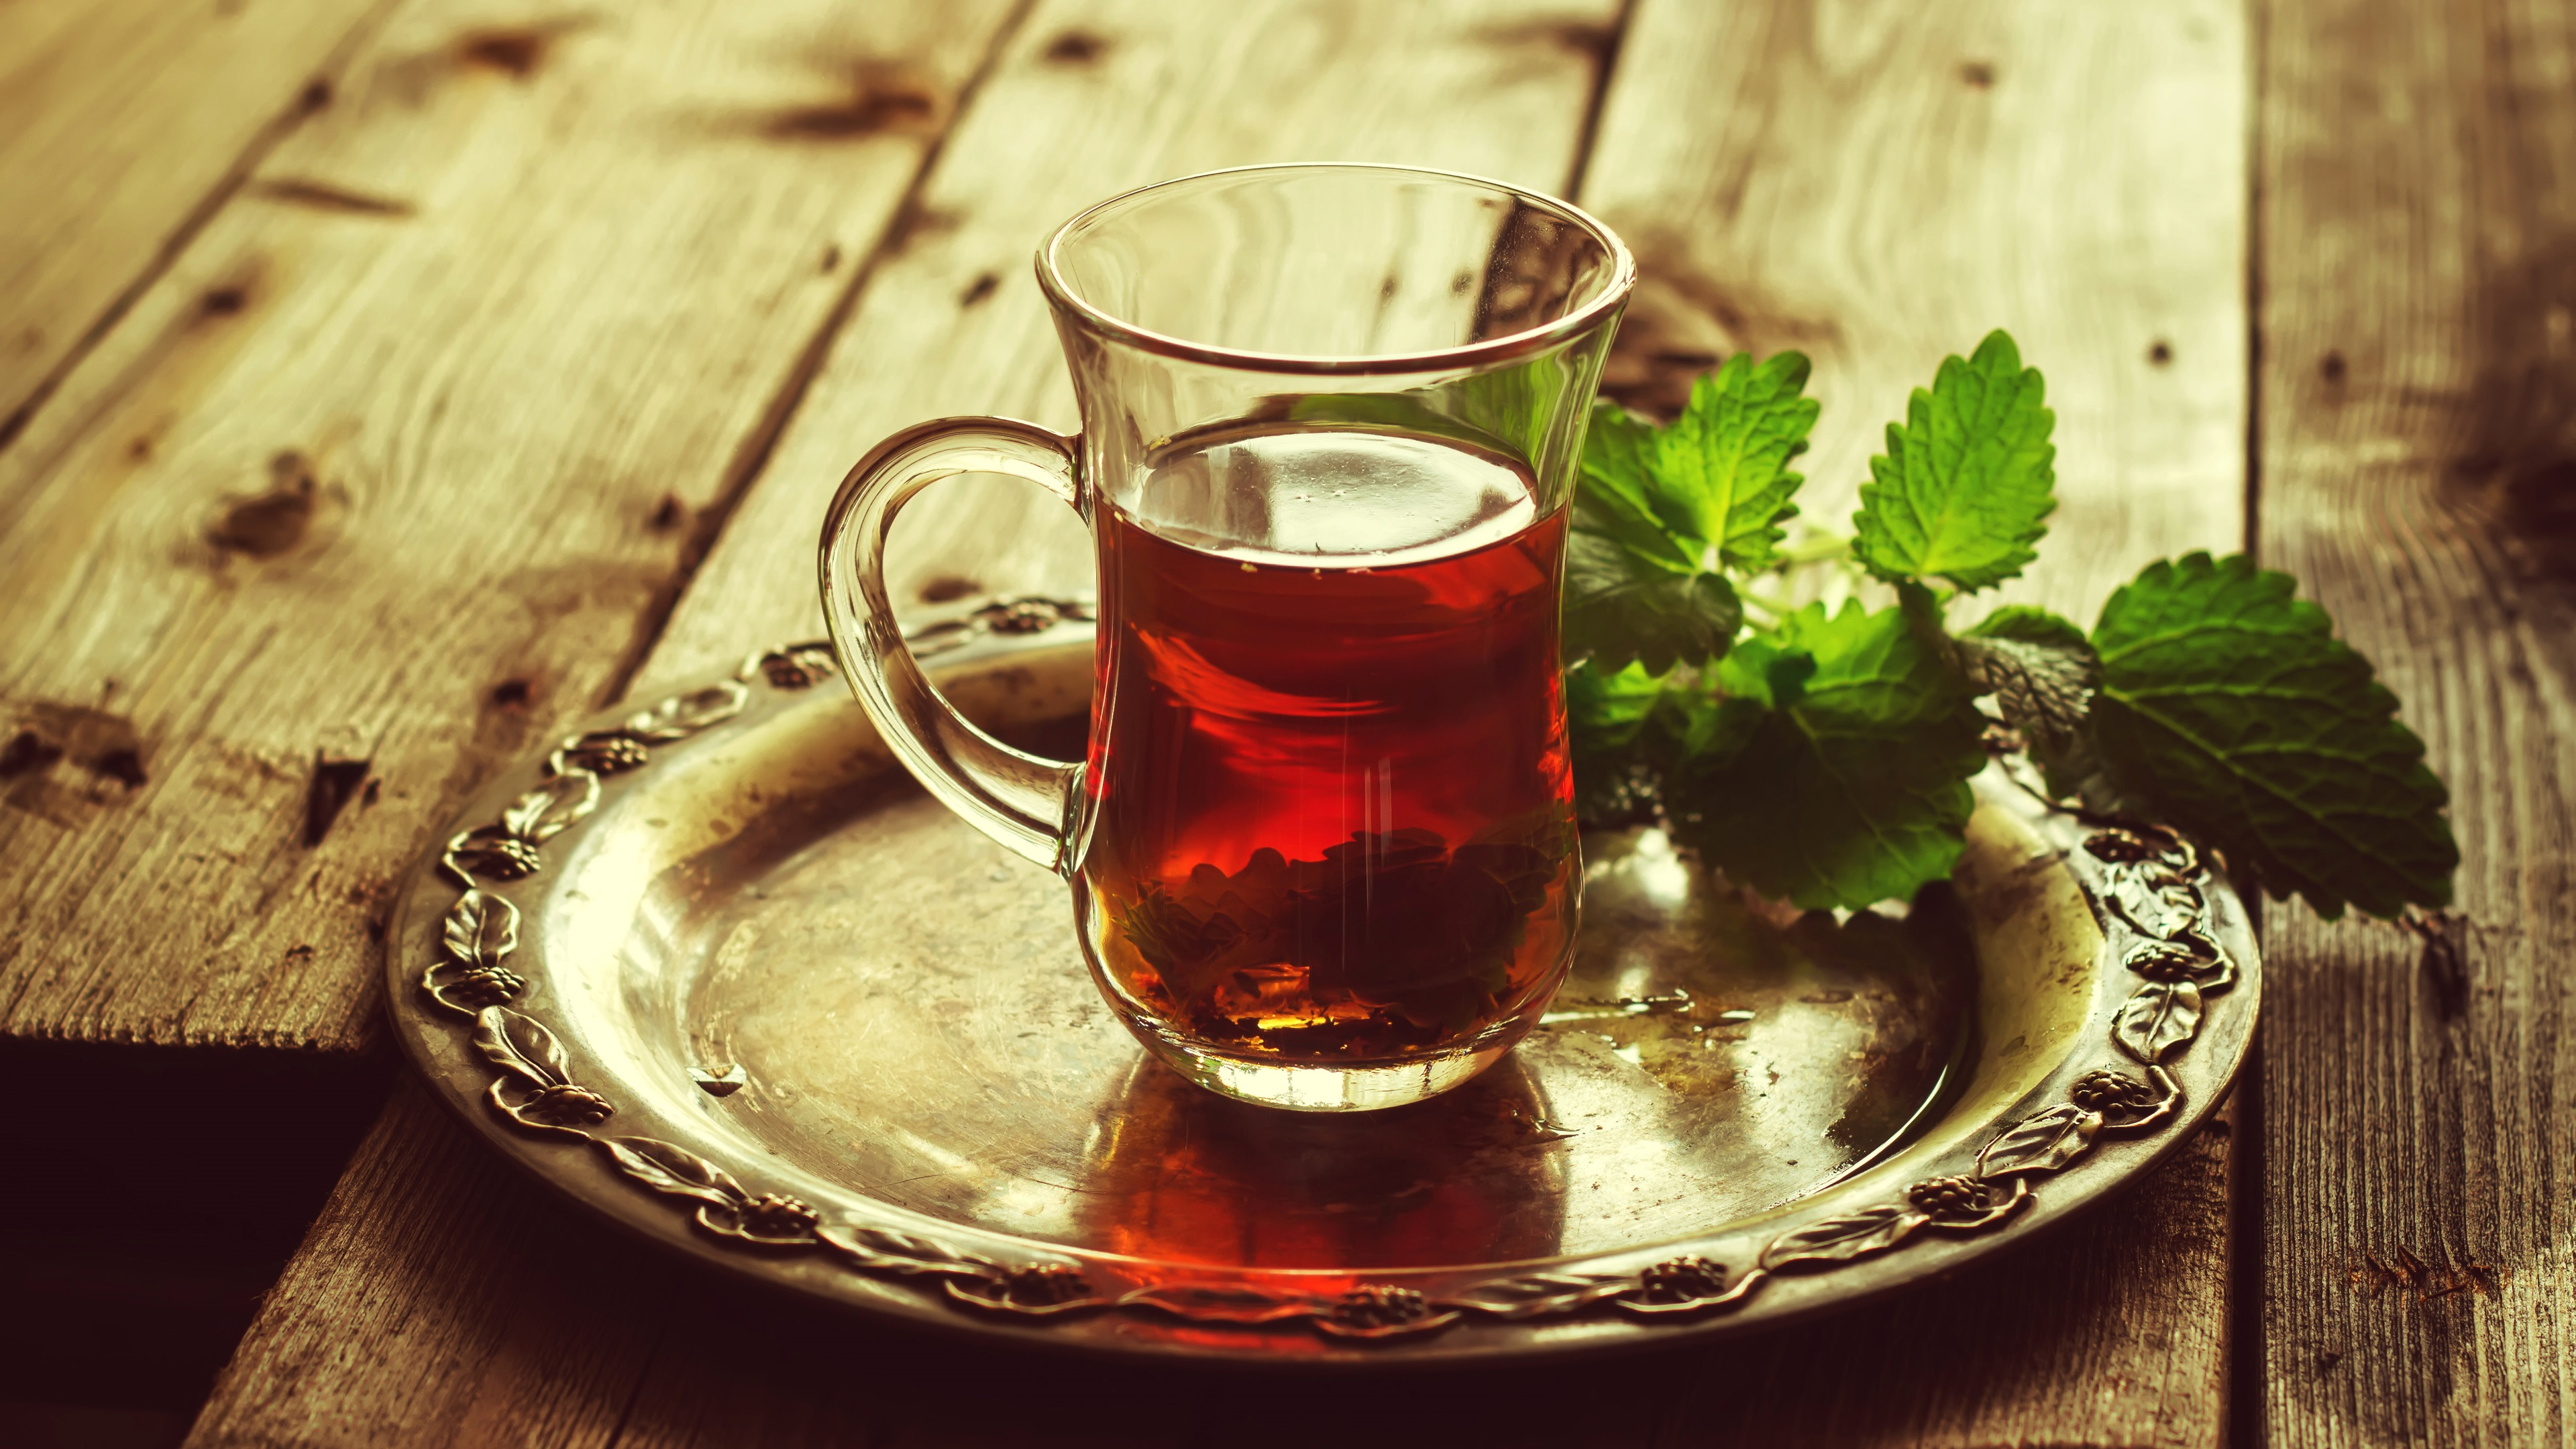 Wallpaper One Cup Of Tea Mint 3840x2160 Uhd 4k Picture Image